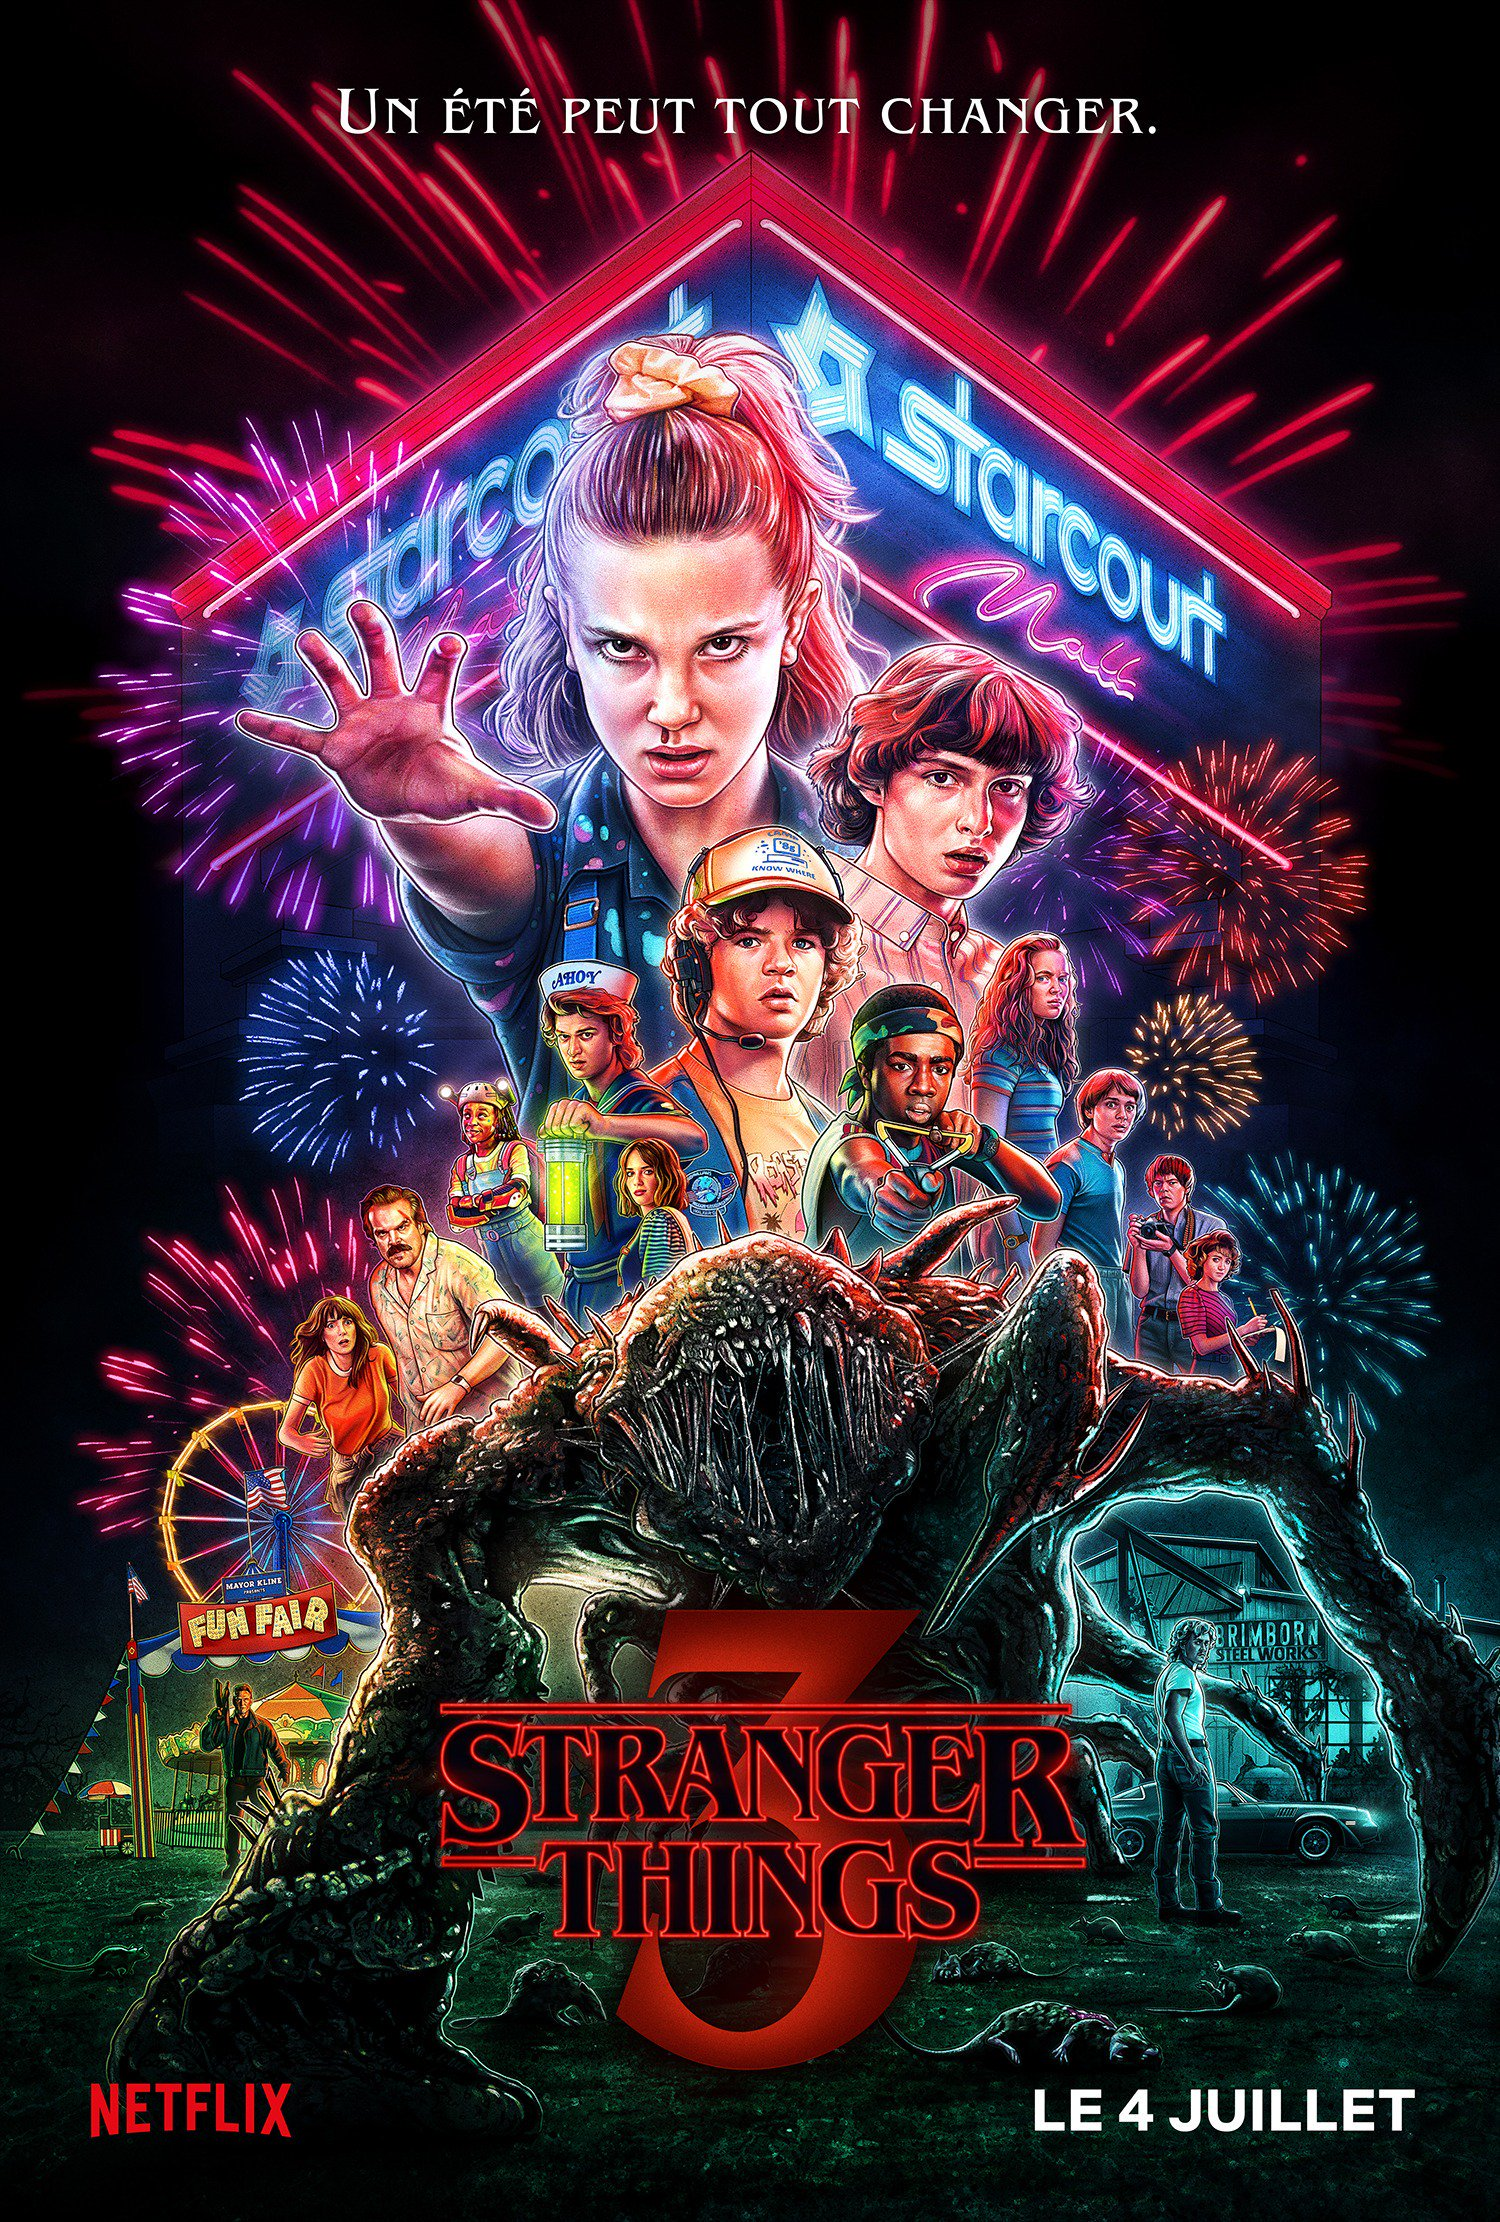 Stranger Things Saison 3 La Pire Saison Du Ph 233 Nom 232 Ne